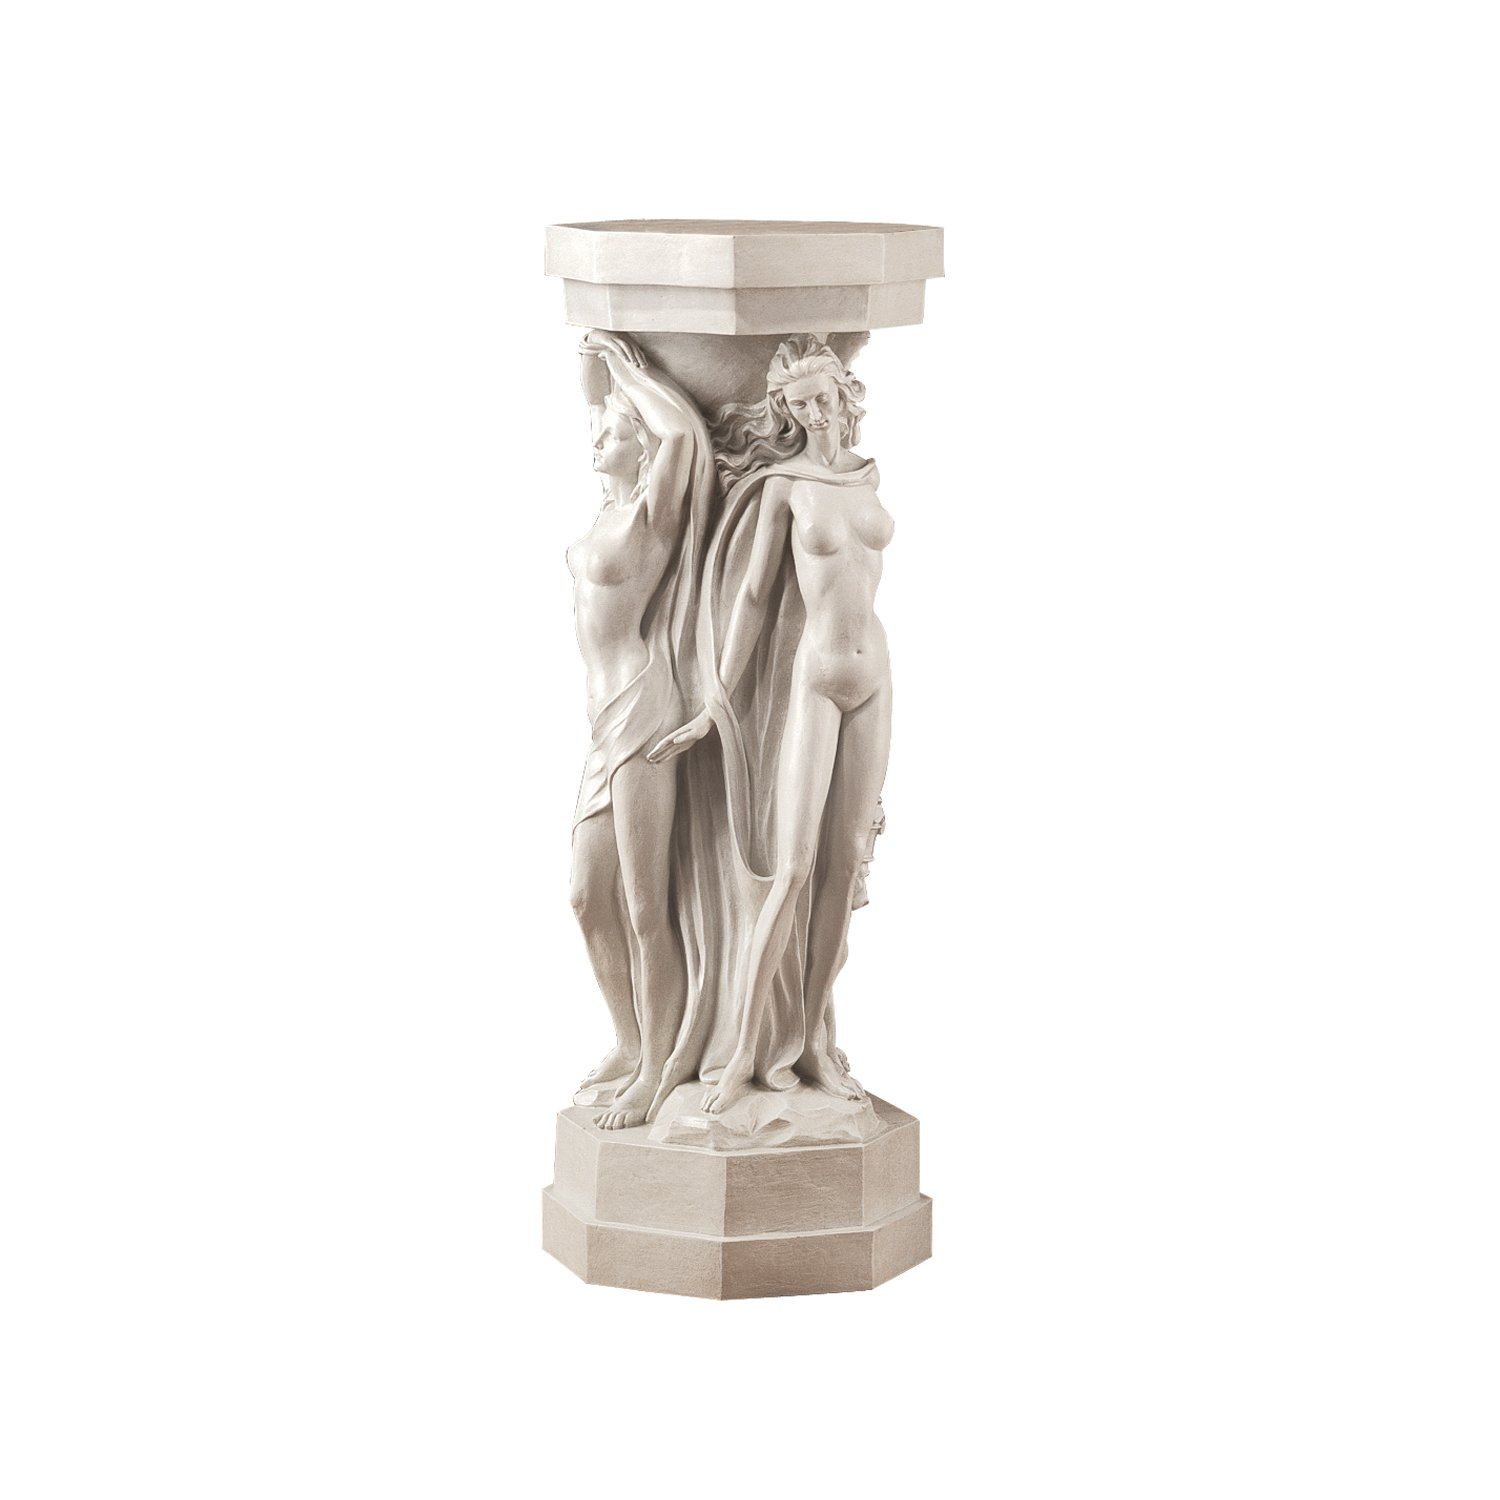 Design Toscano Column of the Maenads Pedestal Sculpture by Design Toscano